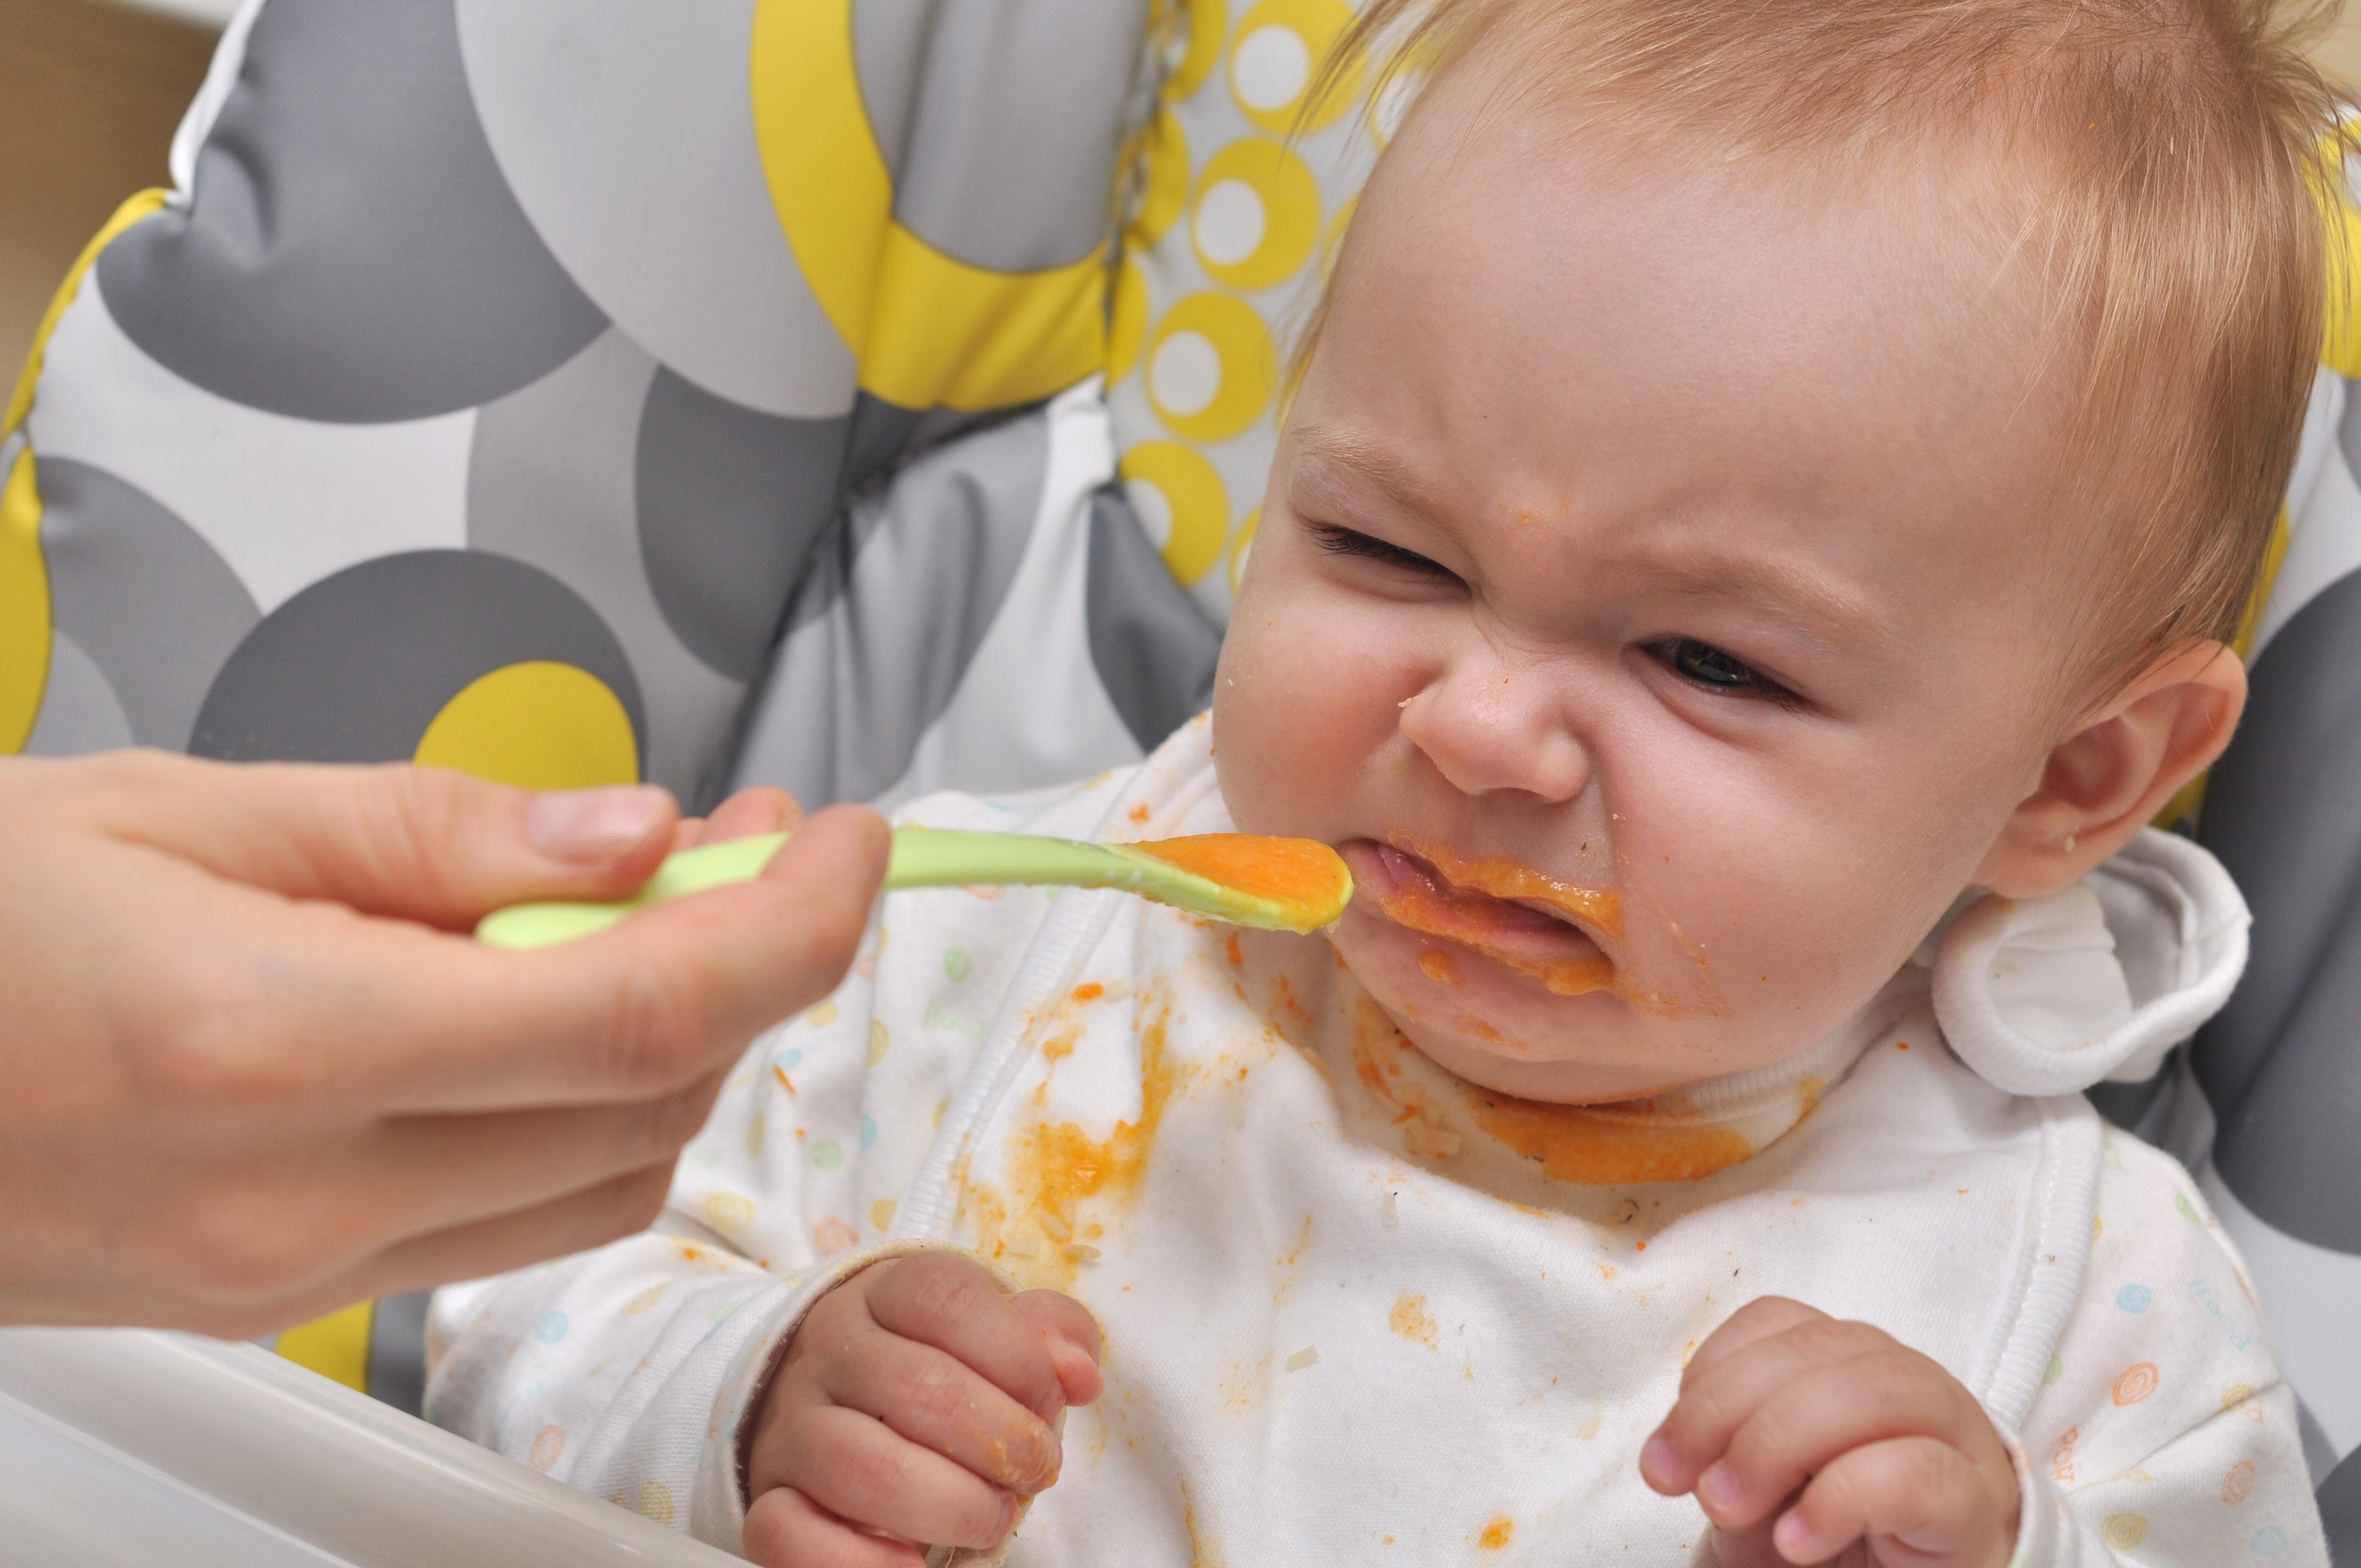 How to handle a fussy eater child